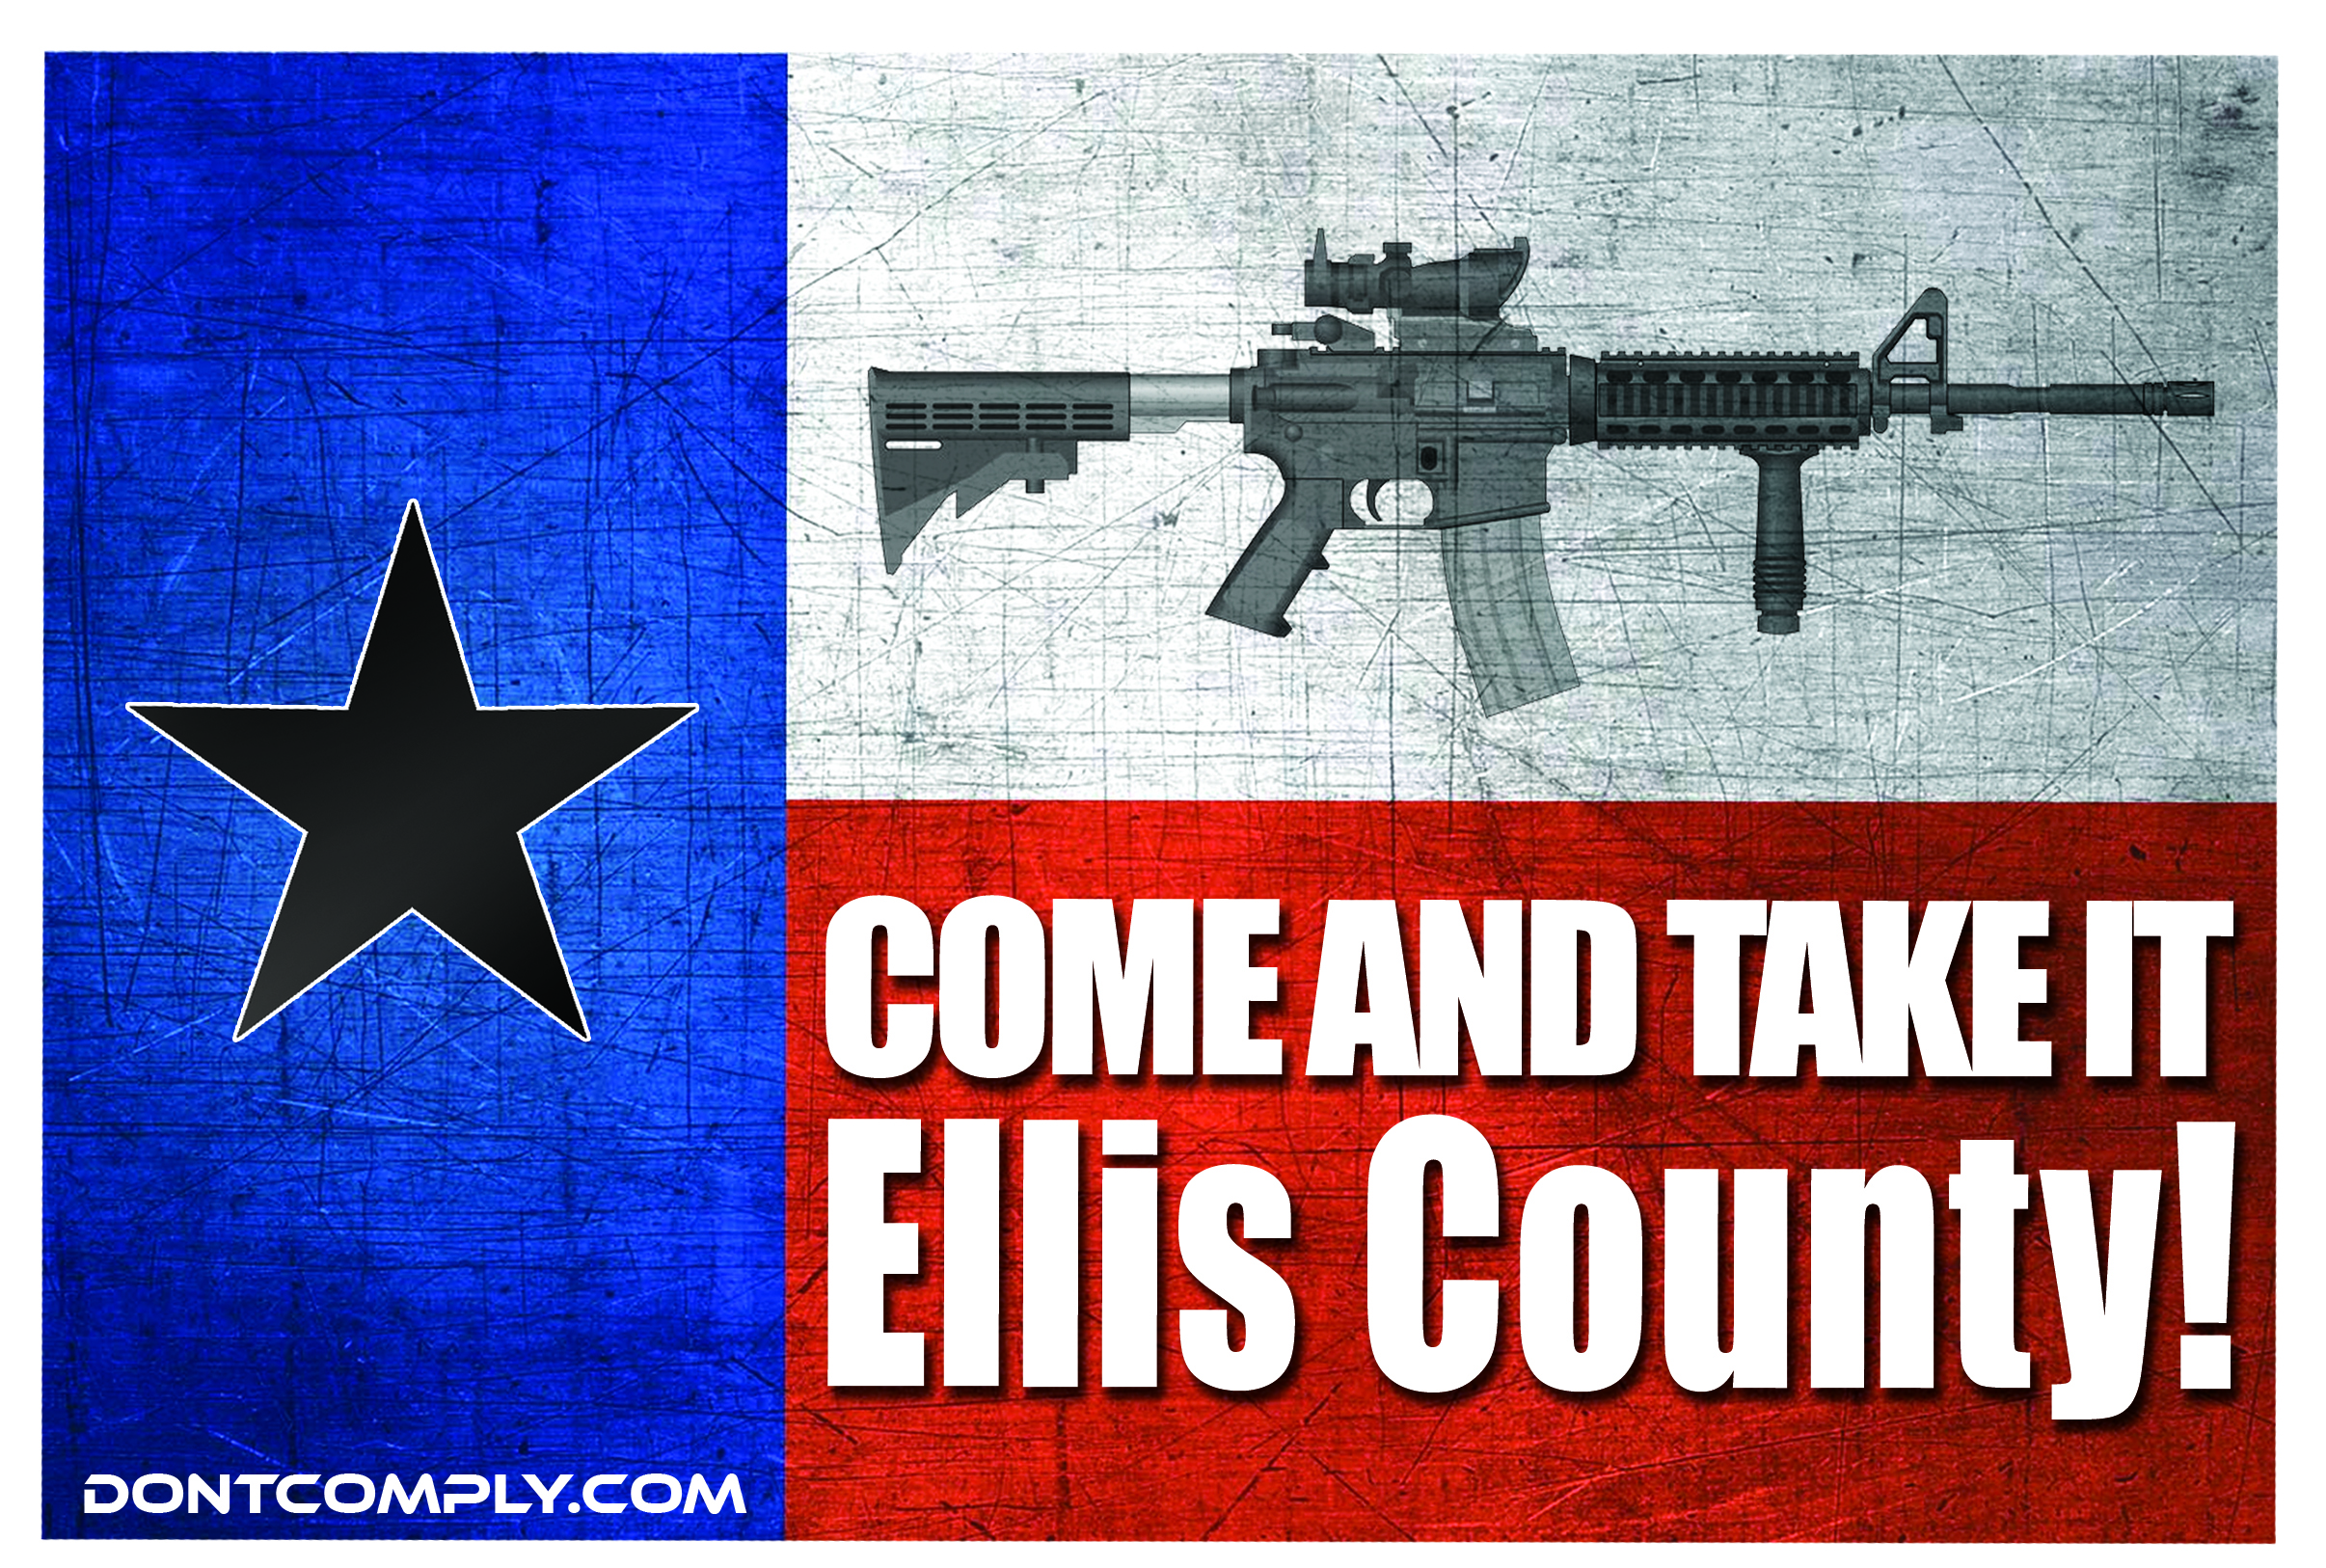 Come And Take It Ellis County -THIS SATURDAY!